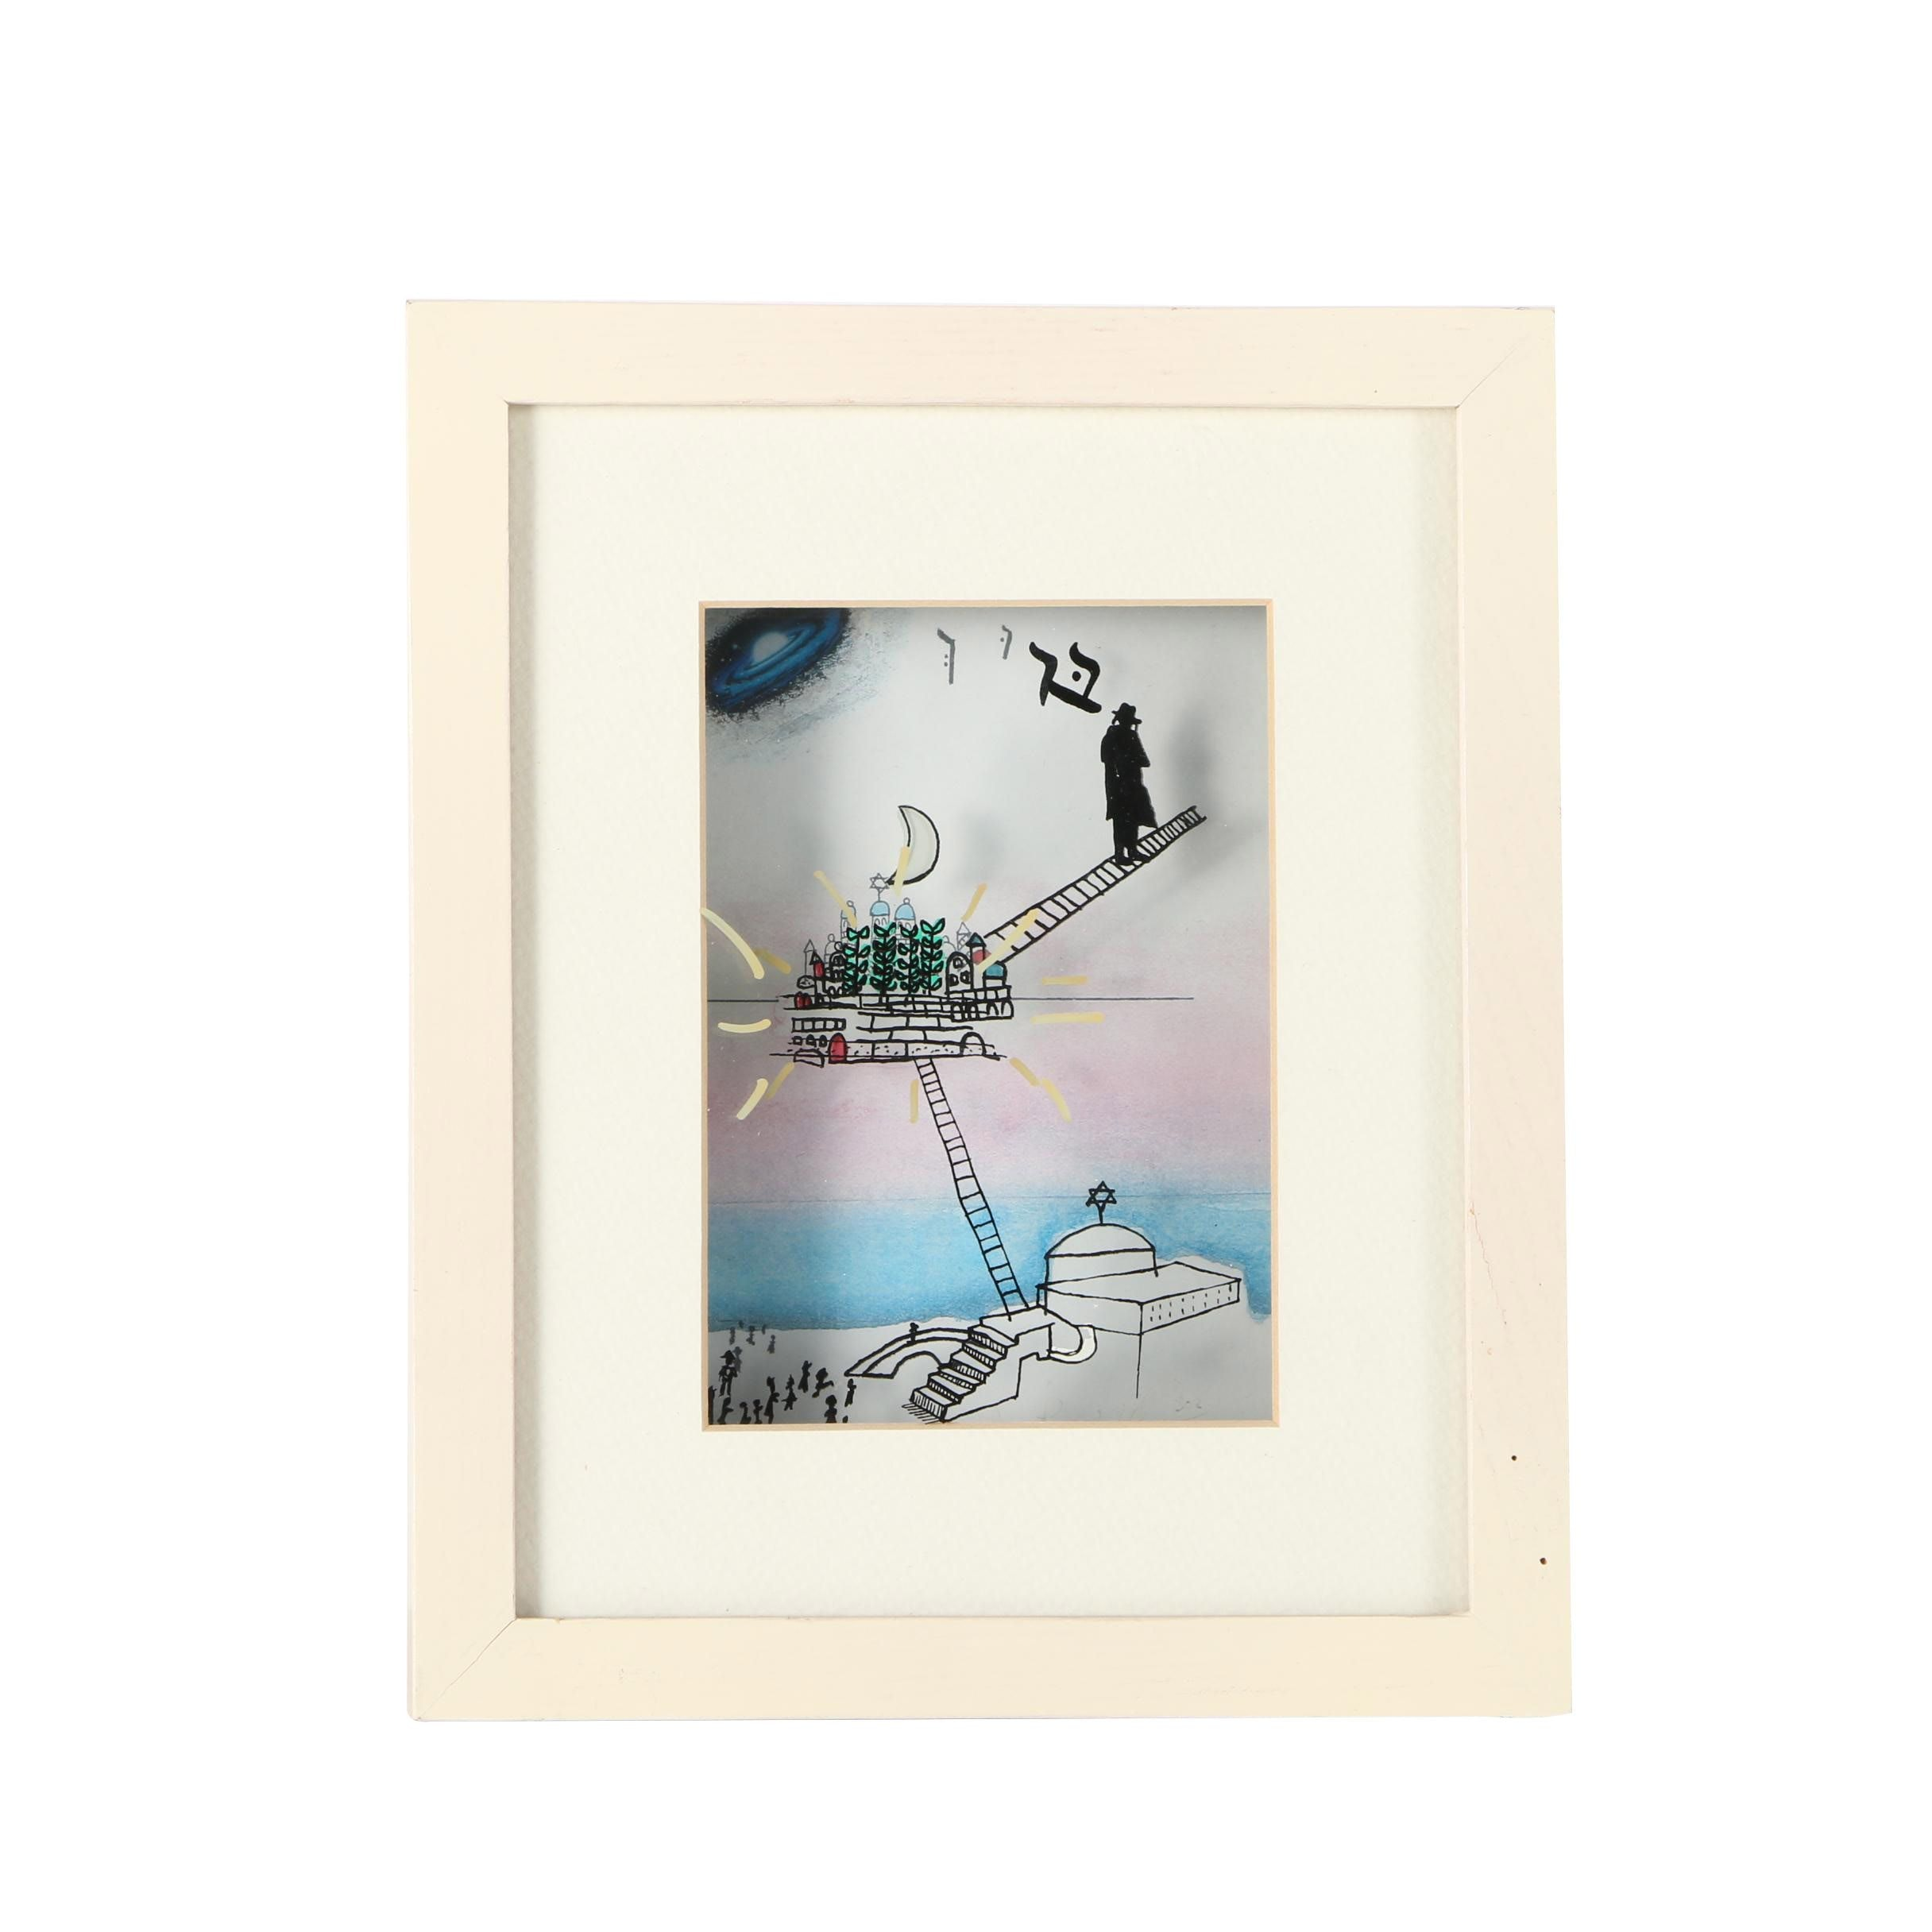 Limited Edition Serigraph Over Offset Lithograph of Figure Climbing Ladder